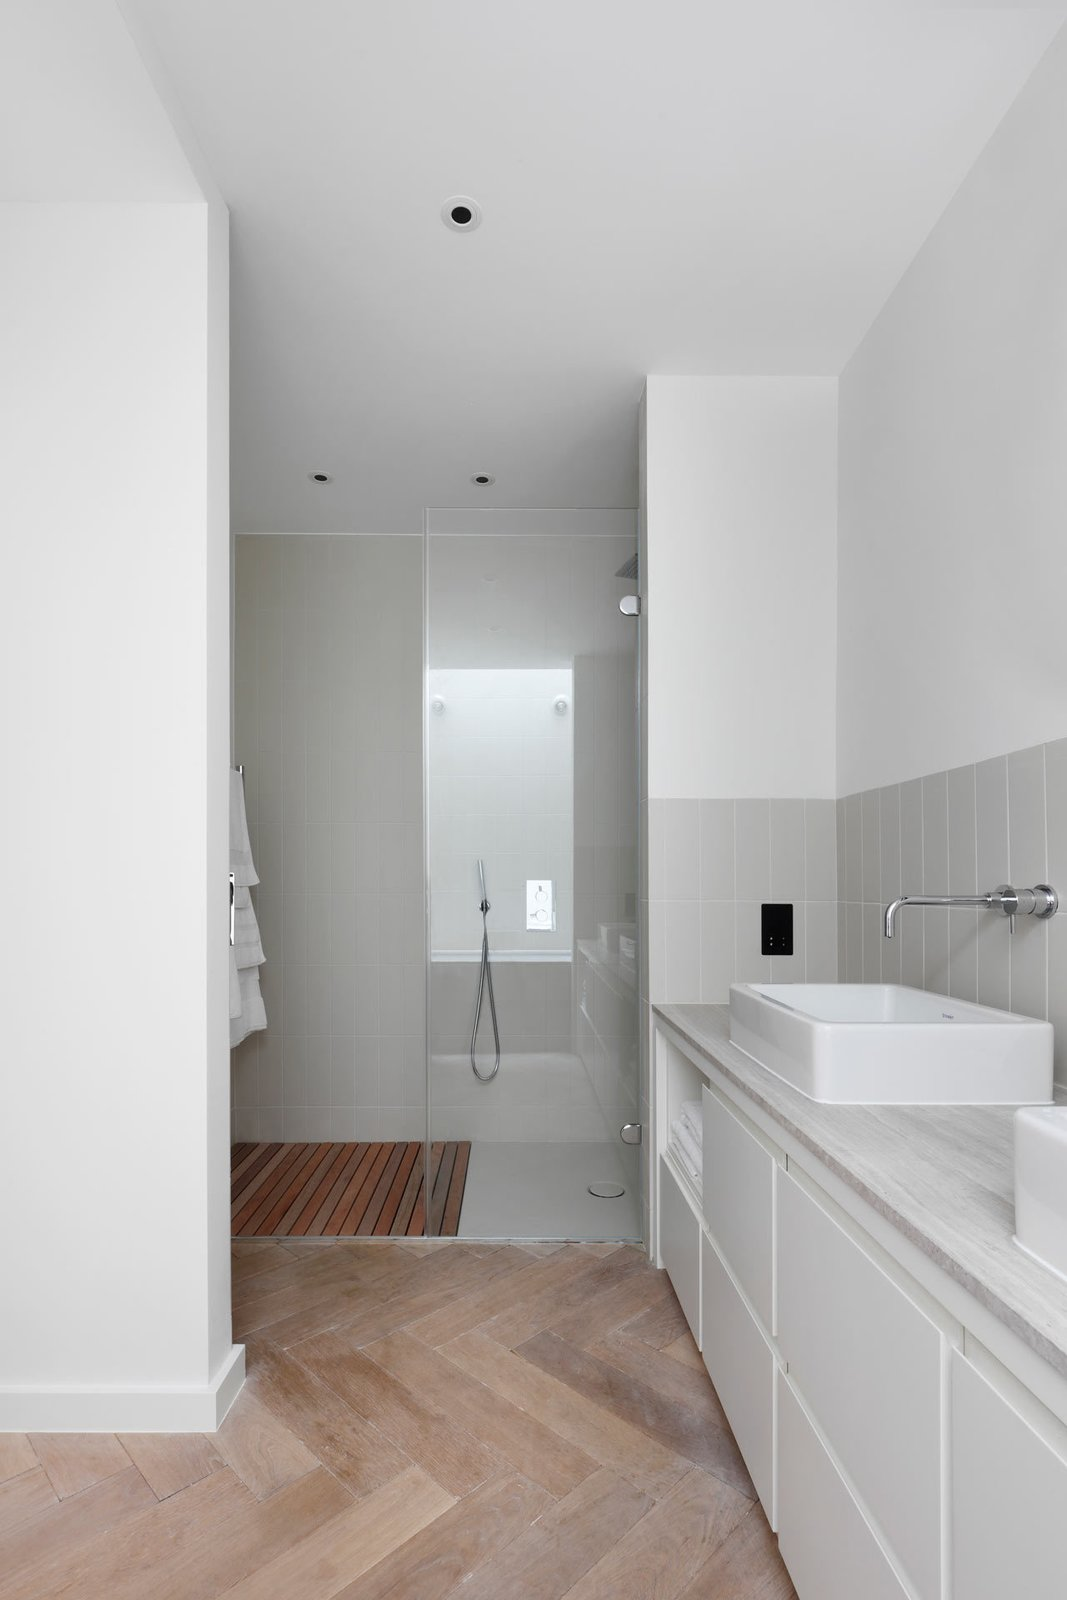 Bath Room, Recessed Lighting, Full Shower, Open Shower, Vessel Sink, and Light Hardwood Floor  Best Photos from The Courtyard House